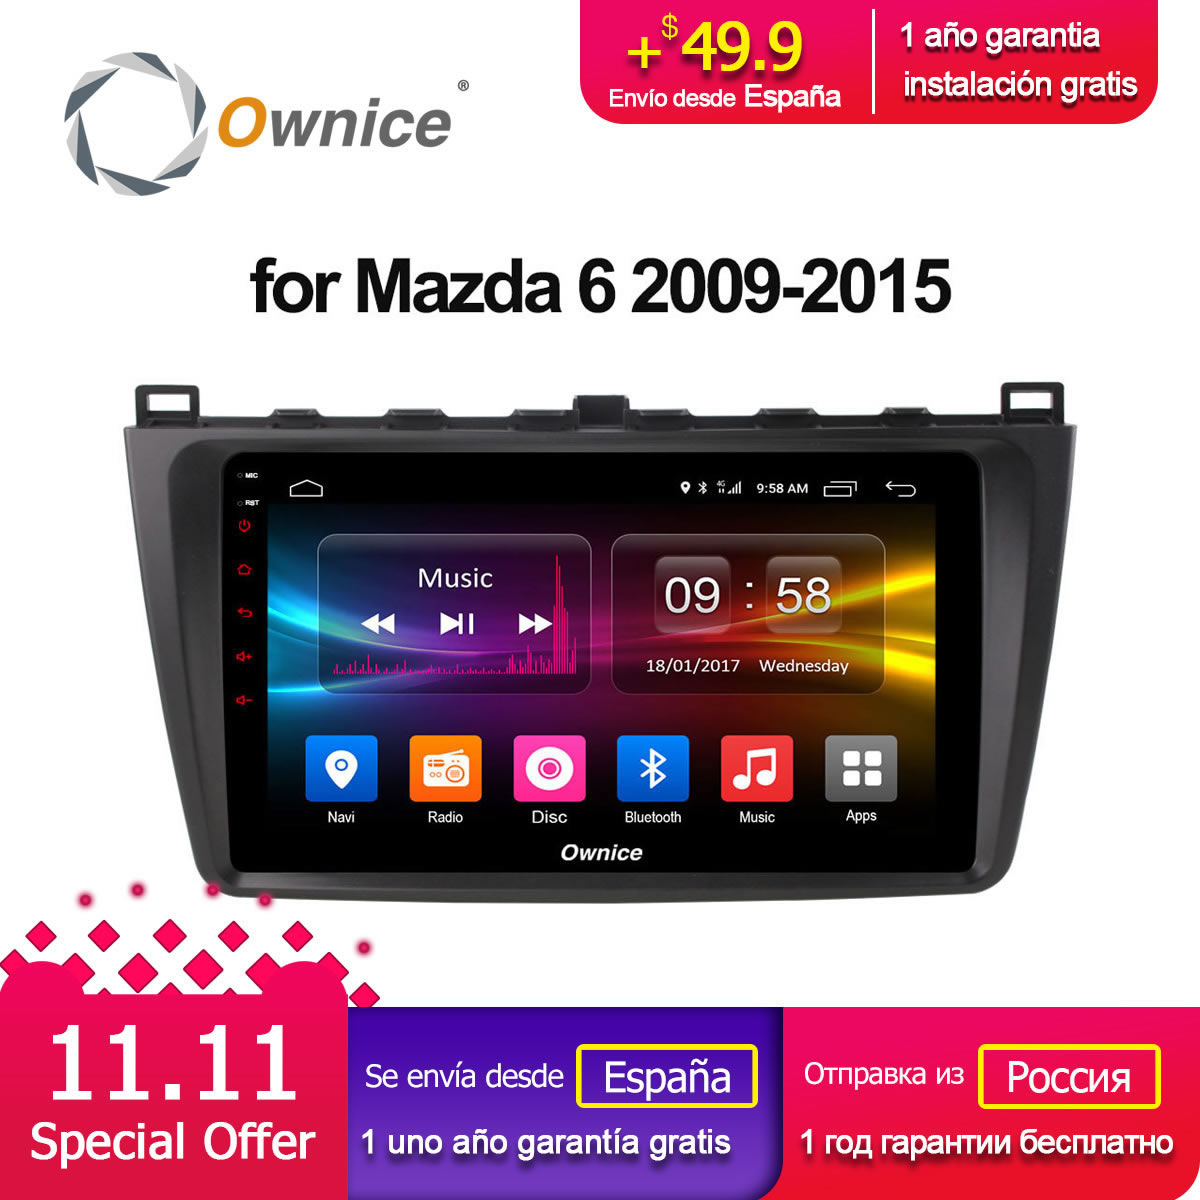 Ownice C500+ G10 Octa 8 Core Android 8.1 2G Car DVD GPS For Mazda 6 2009 - 2015 Autoradio Multimedia Audio Stereo 2G RAM 4G LTE ownice c500 g10 octa core 2gb ram 32g rom android car dvd 8 1 gps for mazda 6 summit 2009 2015 wifi 4g lte radio dab dvr